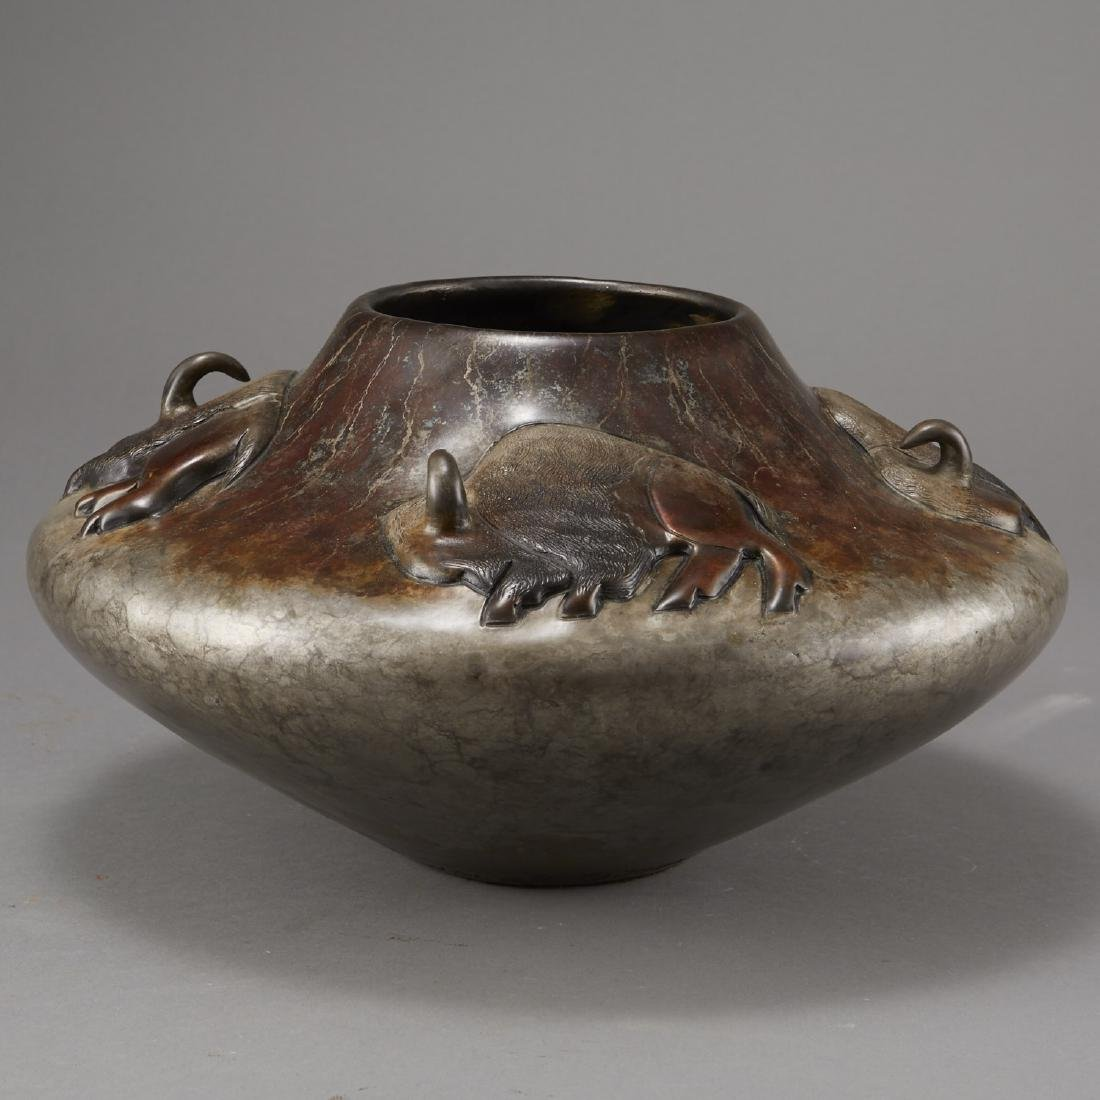 Pahponee Bronze Vessel In a Sacred Manner I Walk - 2